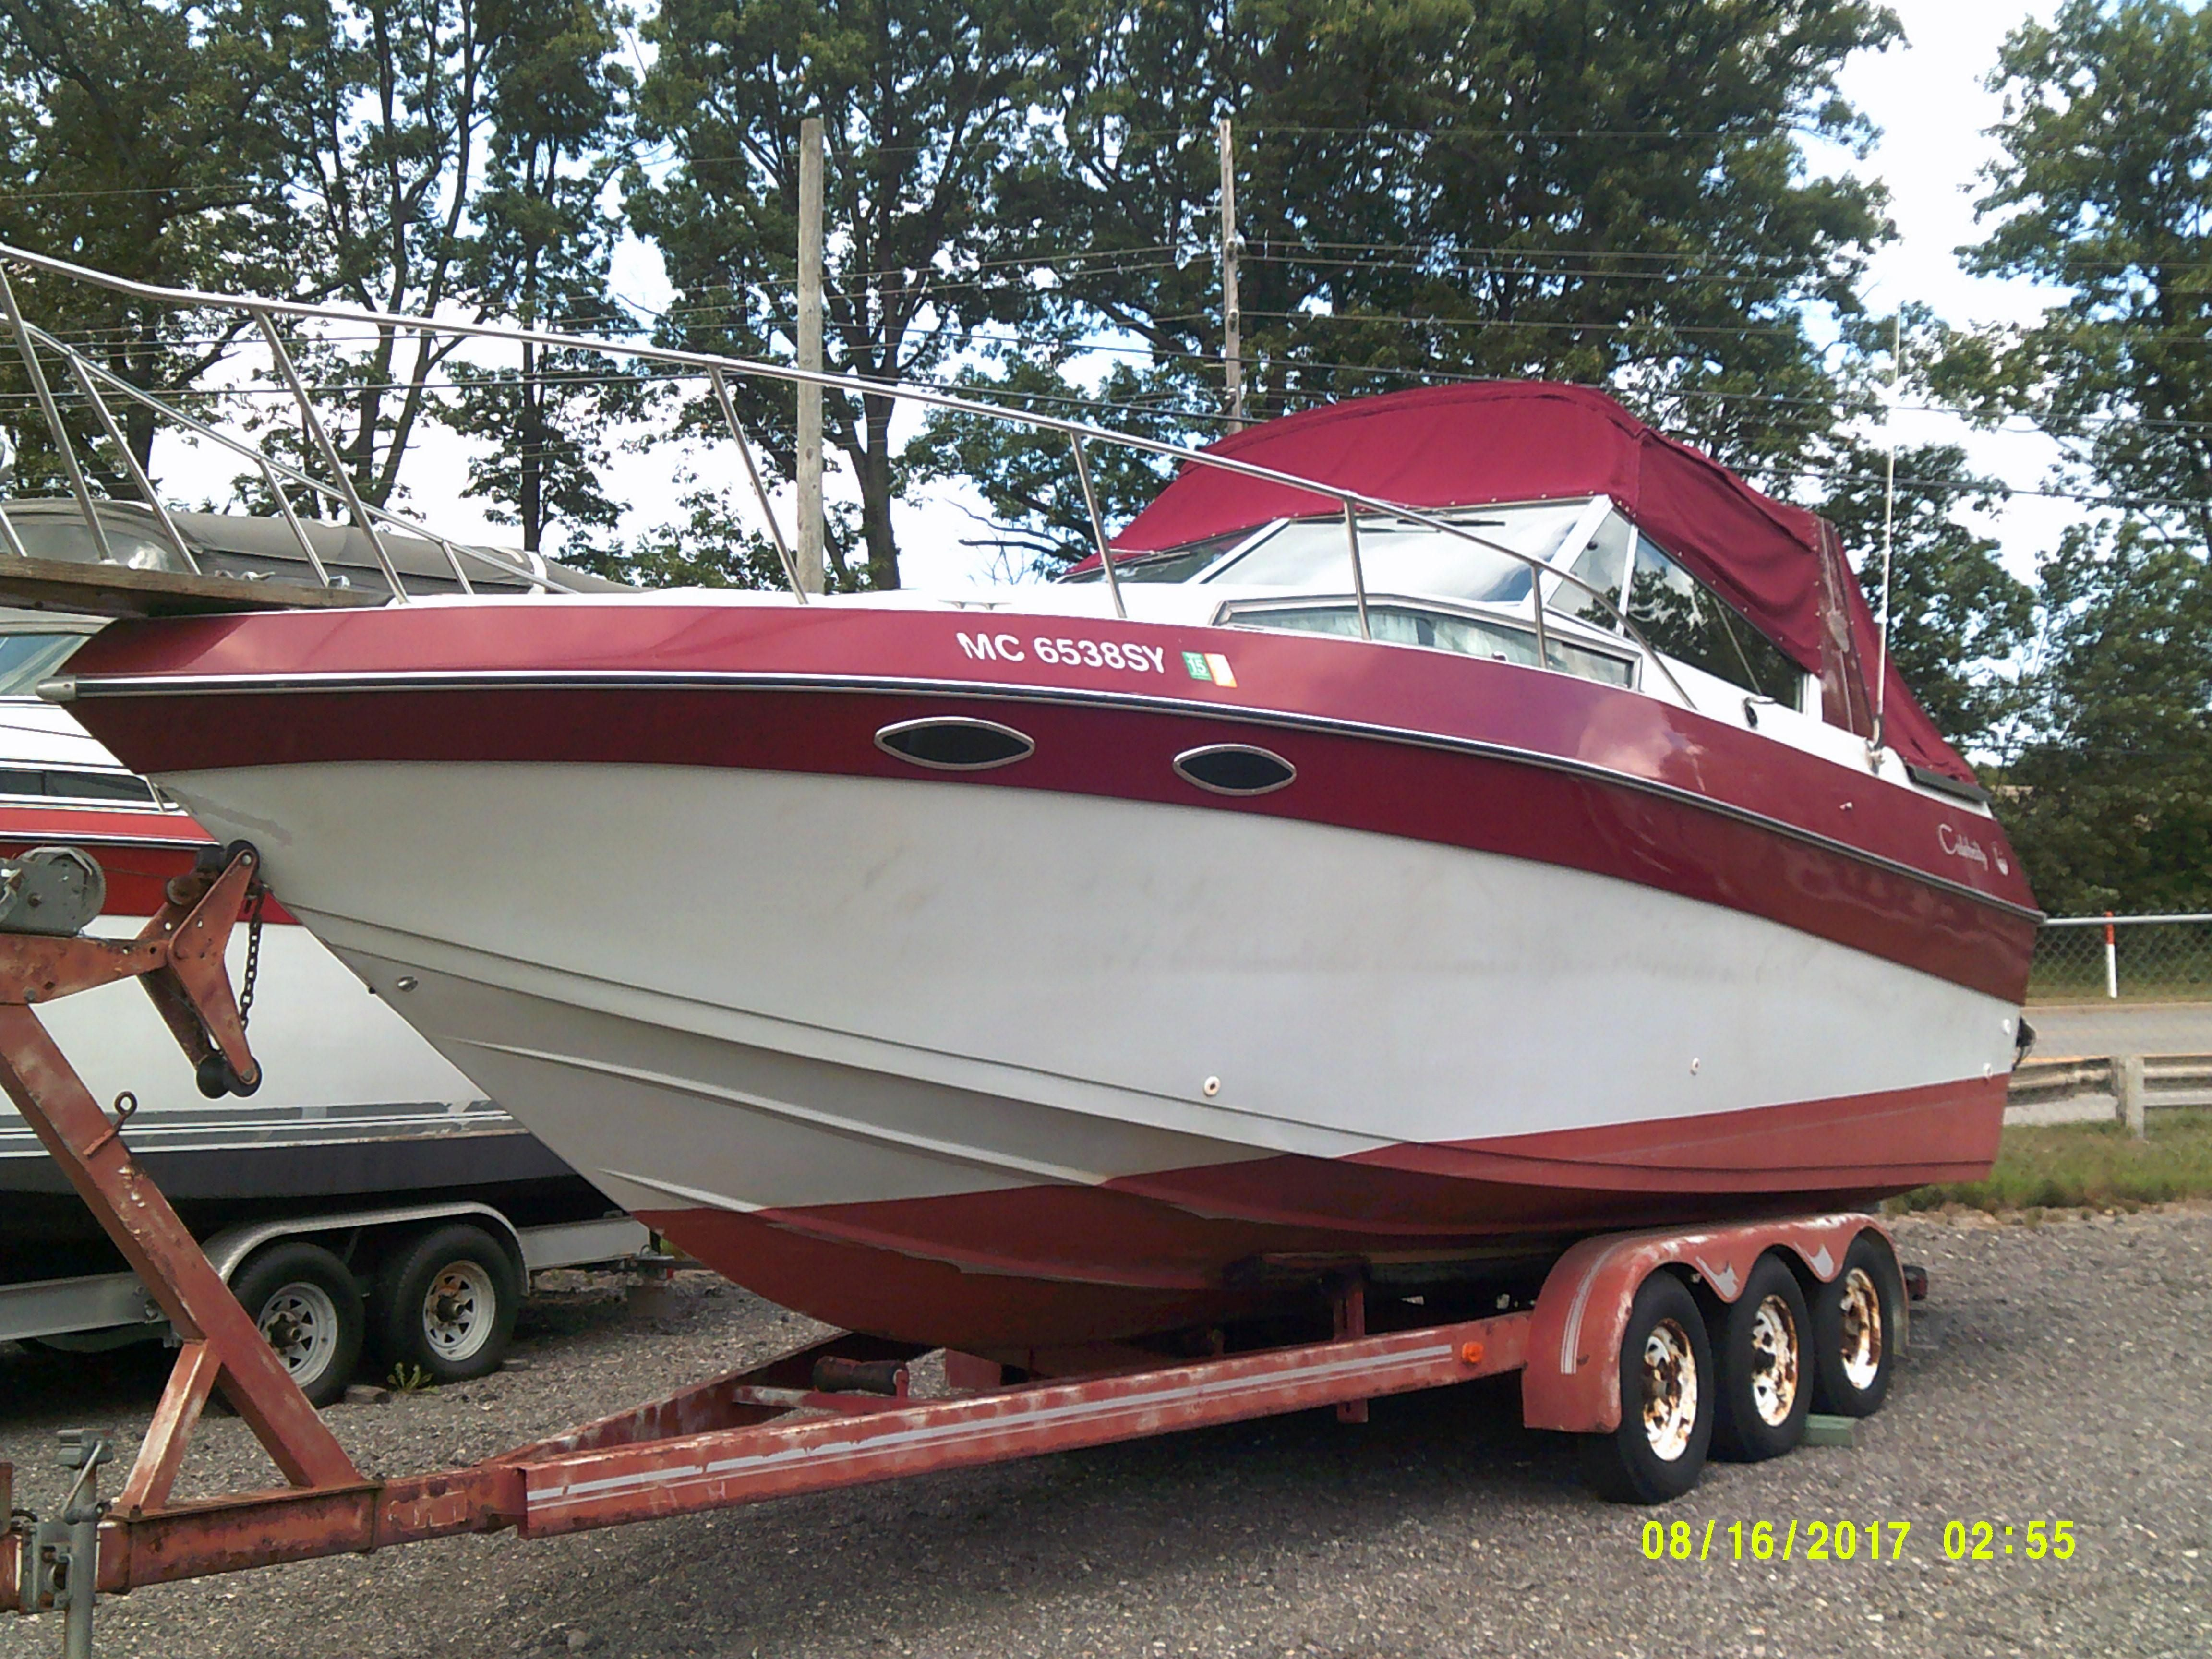 89 Celebrity 19ft. Runabout - YouTube